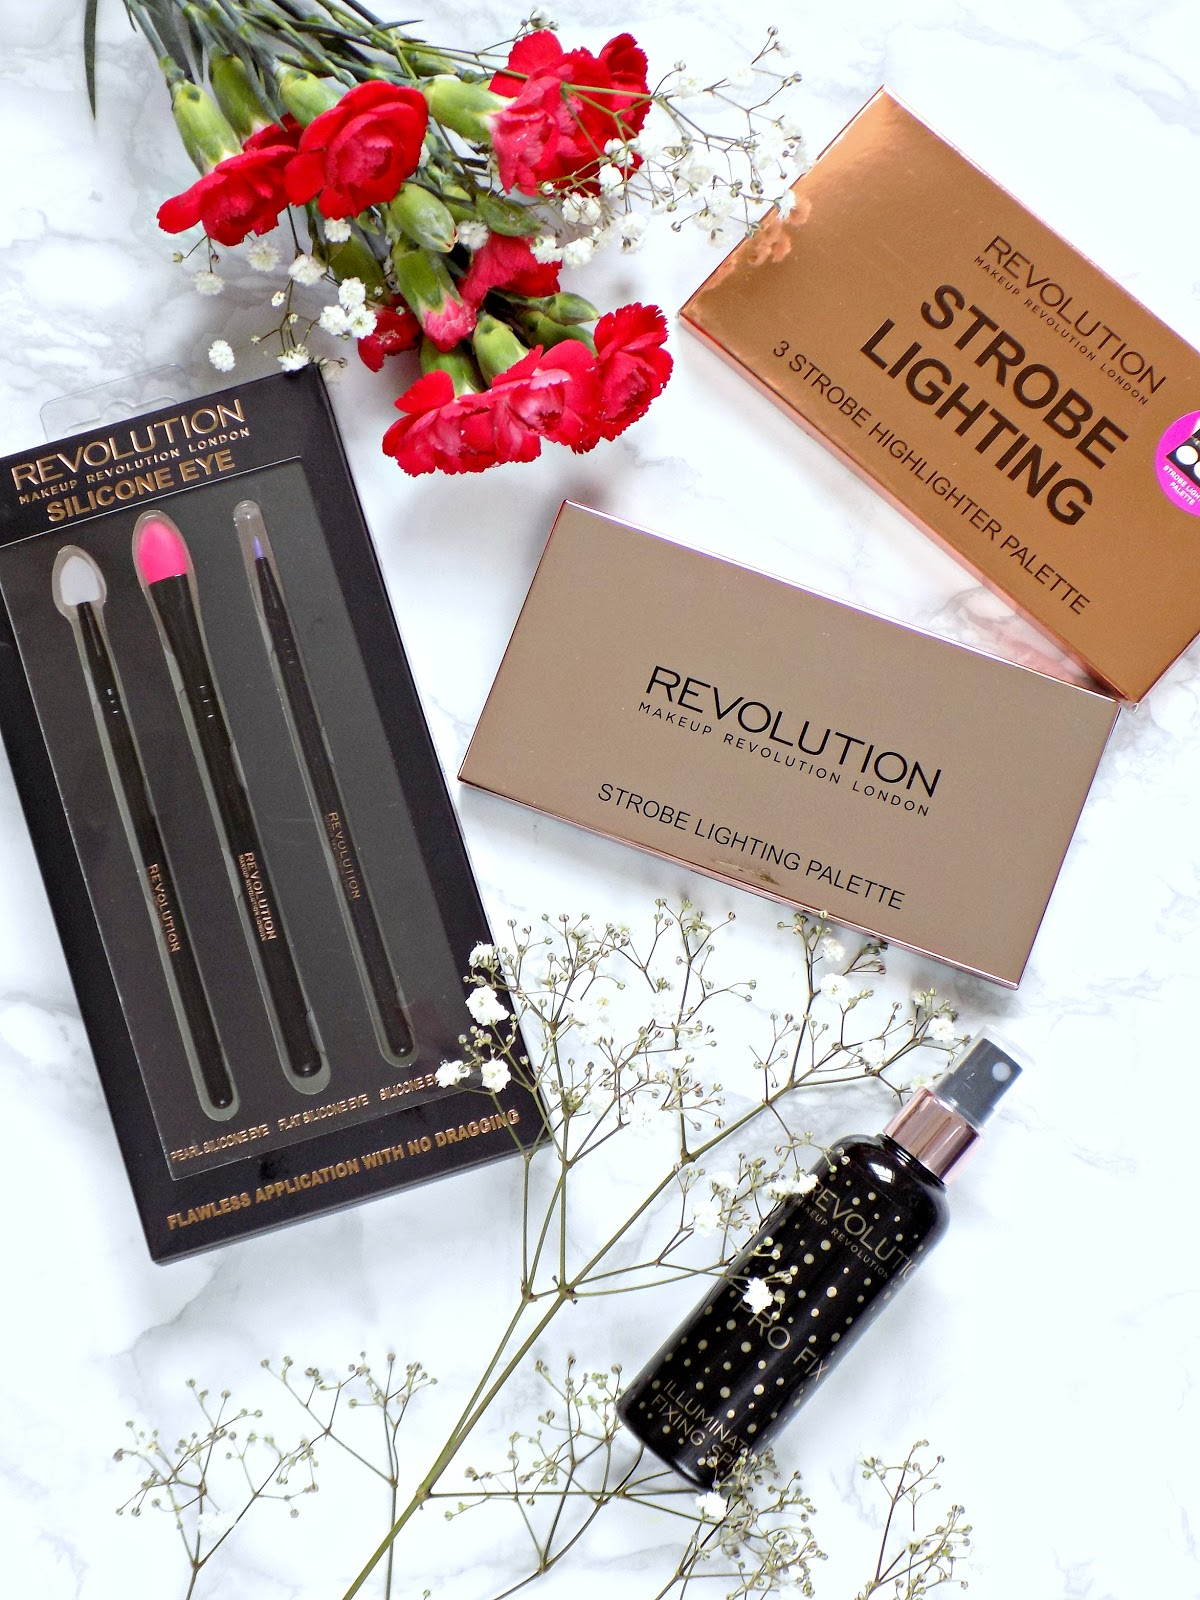 new products from Makeup Revolution, Makeup Revolution Strobe Lighting palette, Makeup Revolution Silicone Eye Set, Makeup Revolution Fixing Spray